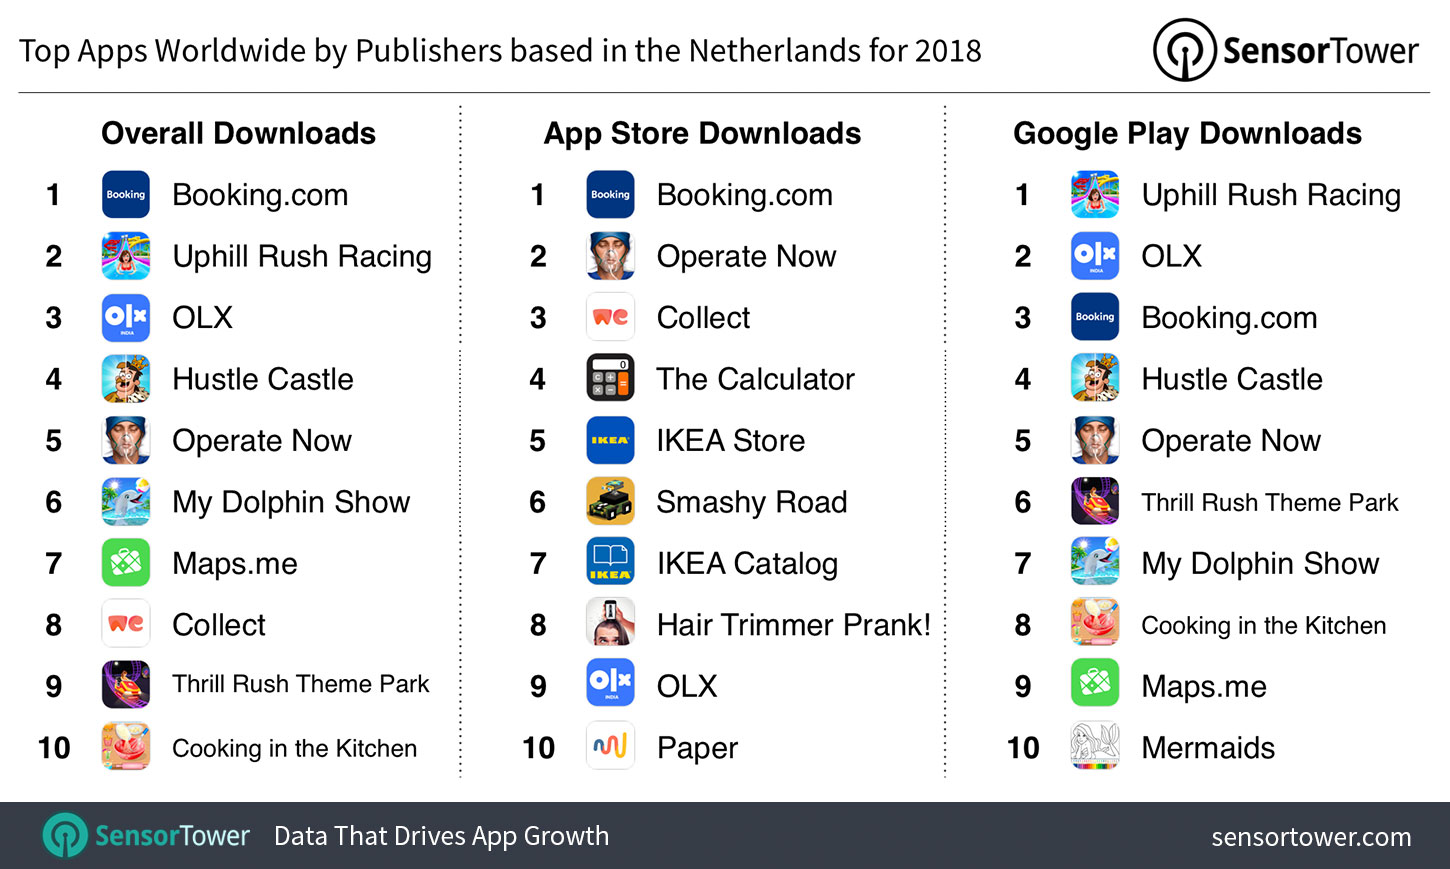 Top Apps Worldwide by Publishers Based in The Netherlands